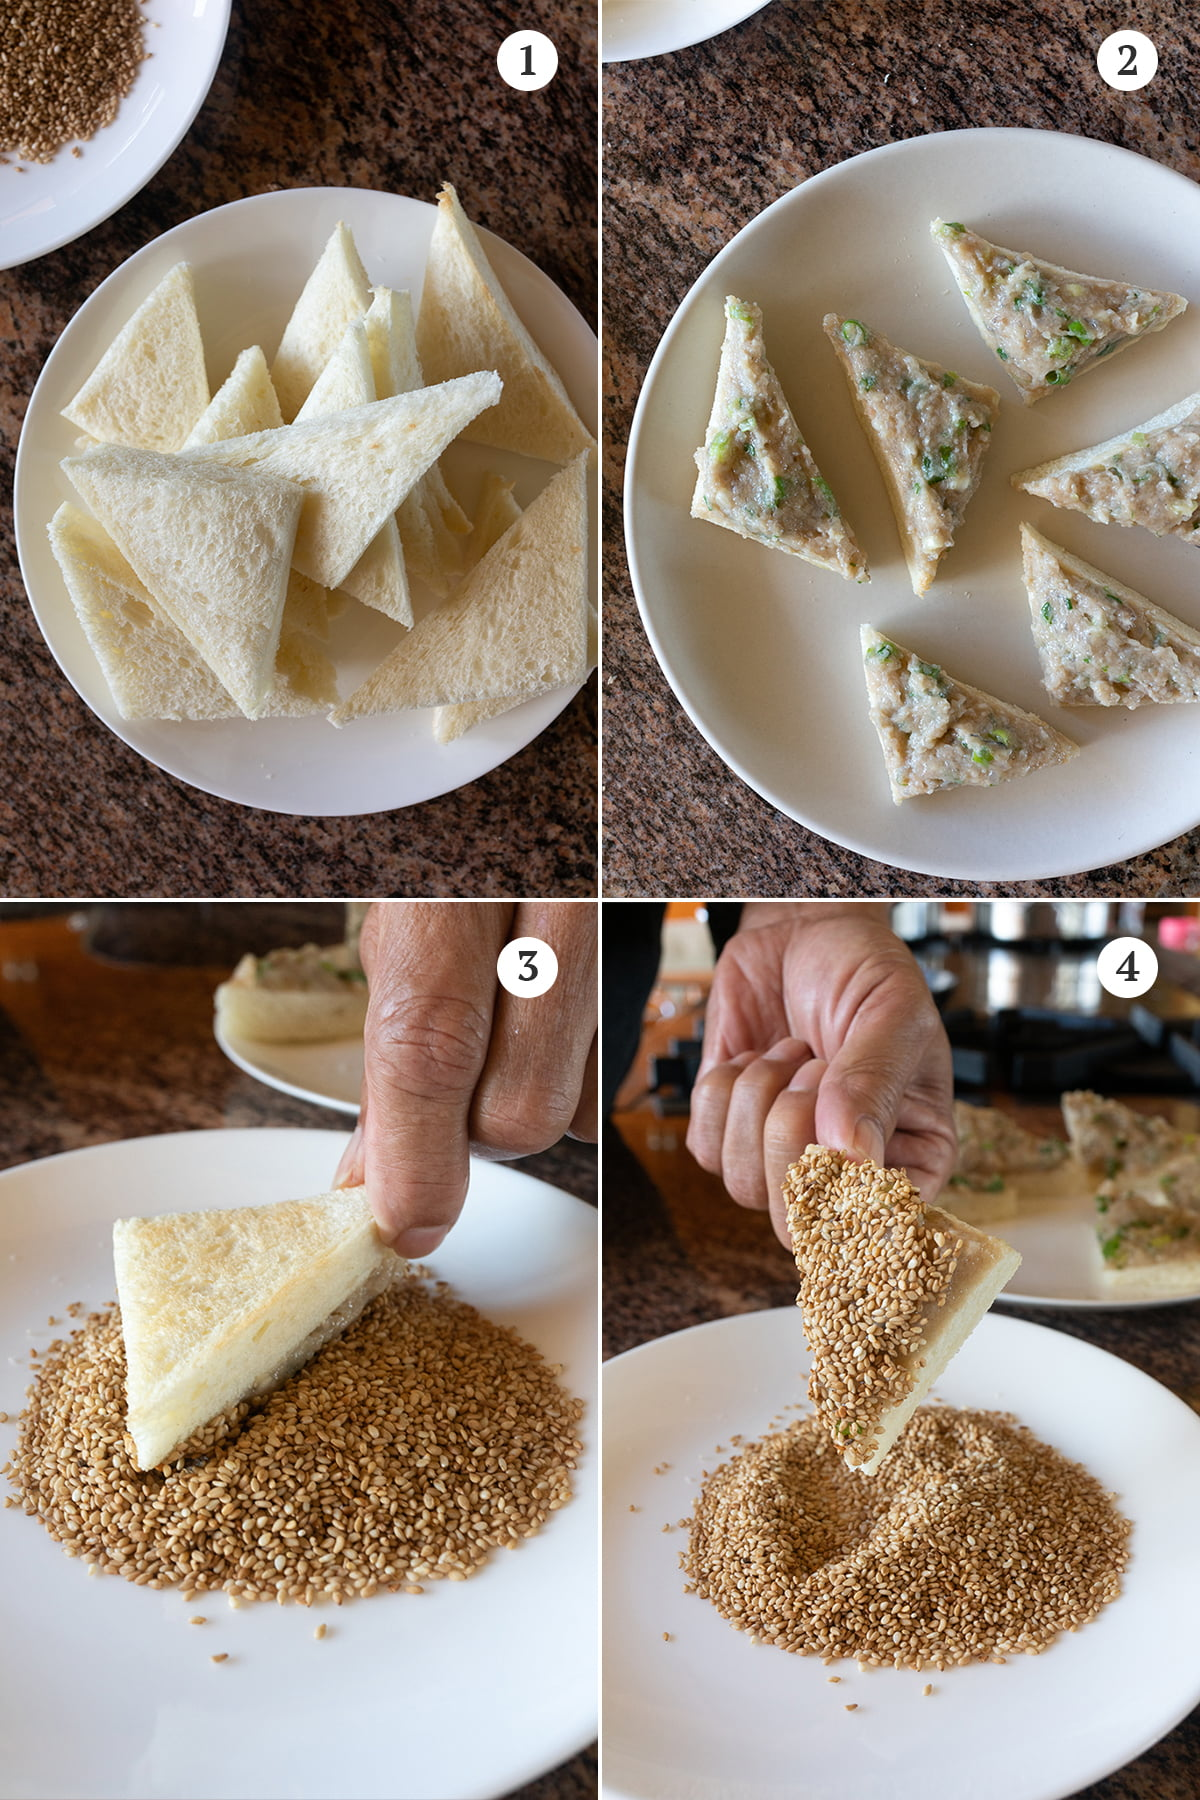 Collage of preparation steps: 1) cut the bread into triangles, 2) spread a thick layer of the shrimp paste onto the bread, 3) dip the bread (shrimp side down) onto a plate of sesame seeds, 4) make sure it is evenly coated.